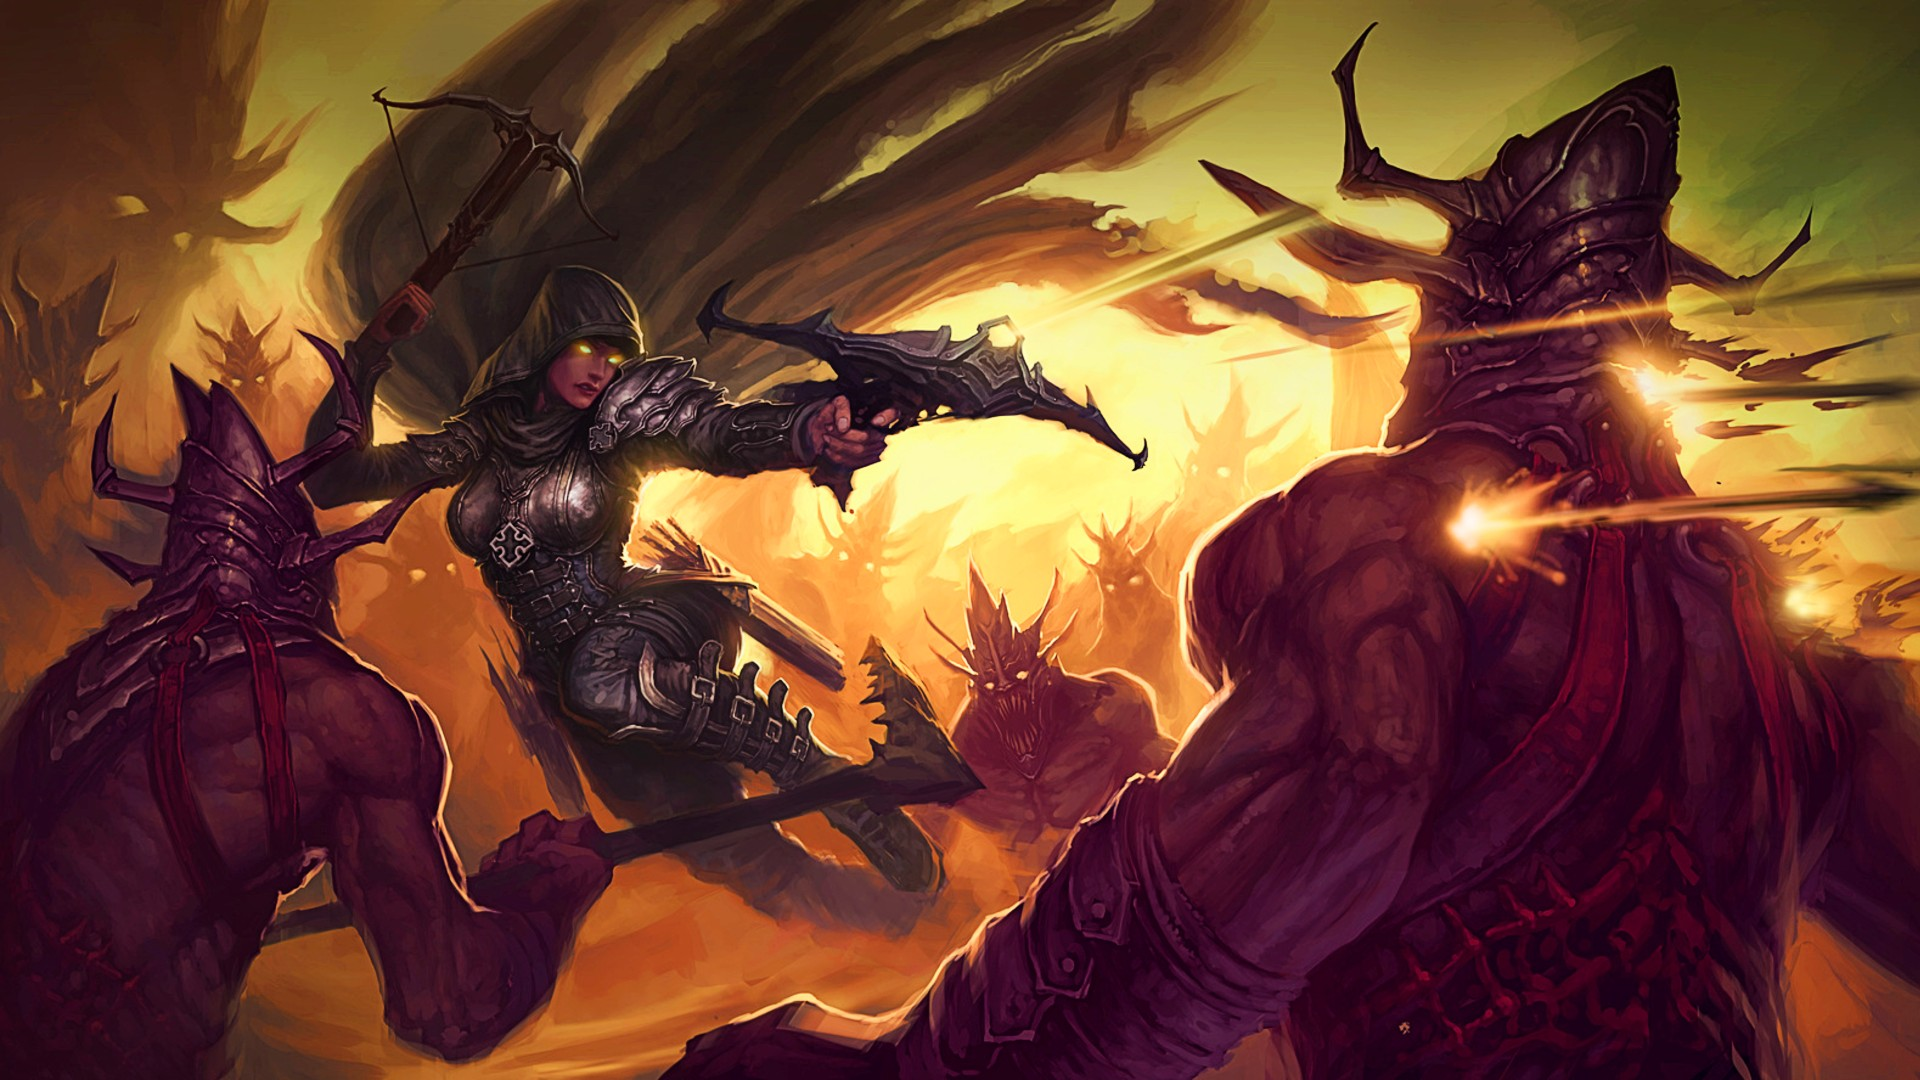 Diablo 3 gets its big follower revamp when Season 23 kicks off next week